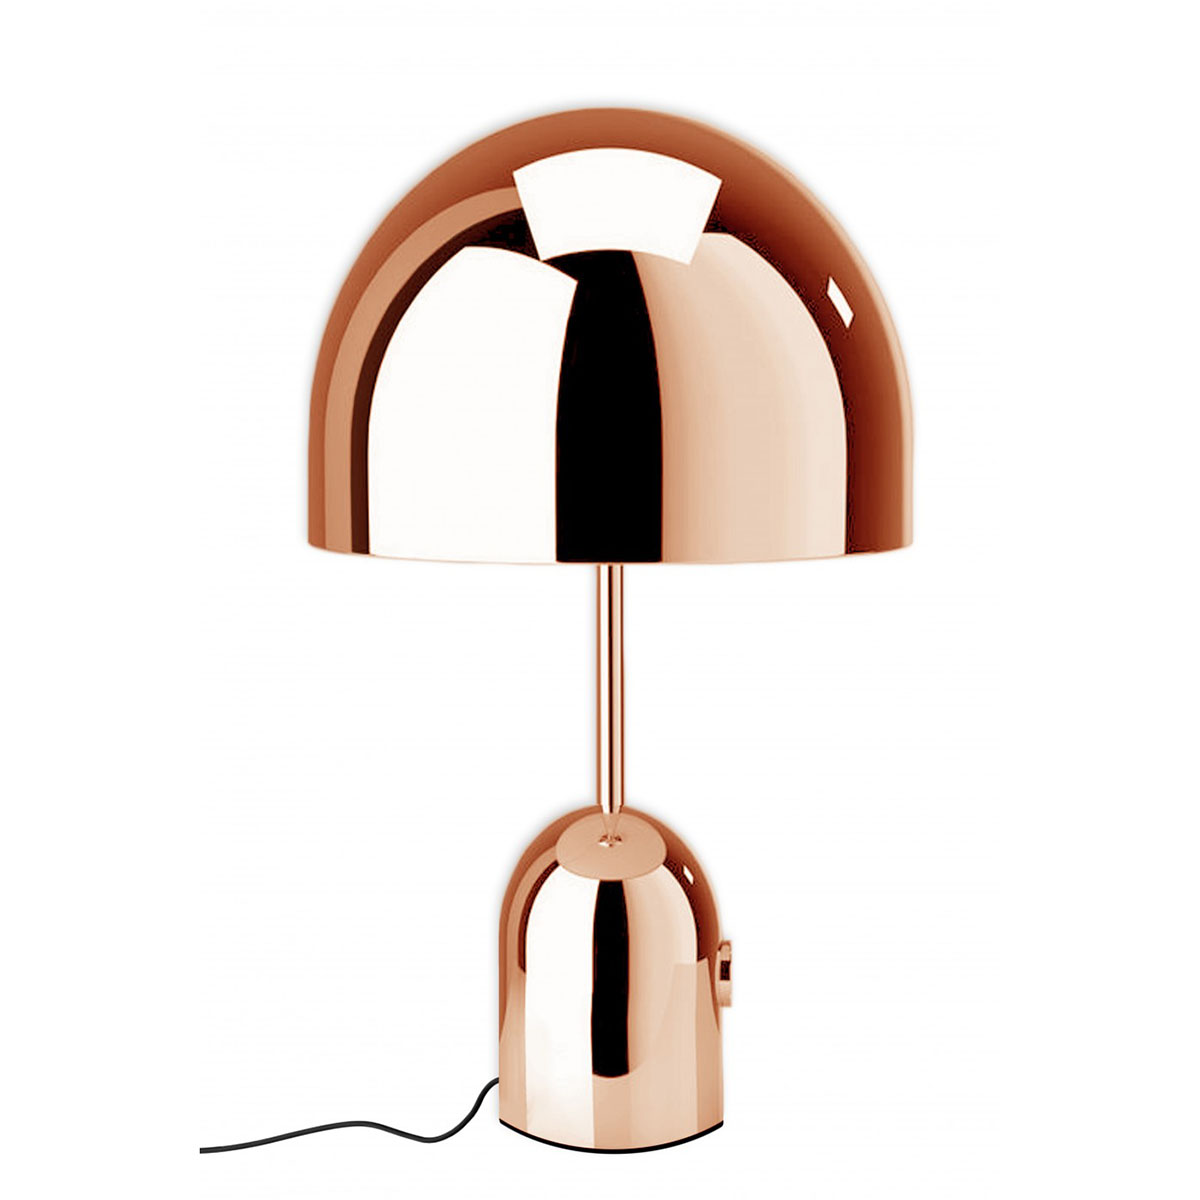 bell table light copper xcelsior selection online store. Black Bedroom Furniture Sets. Home Design Ideas